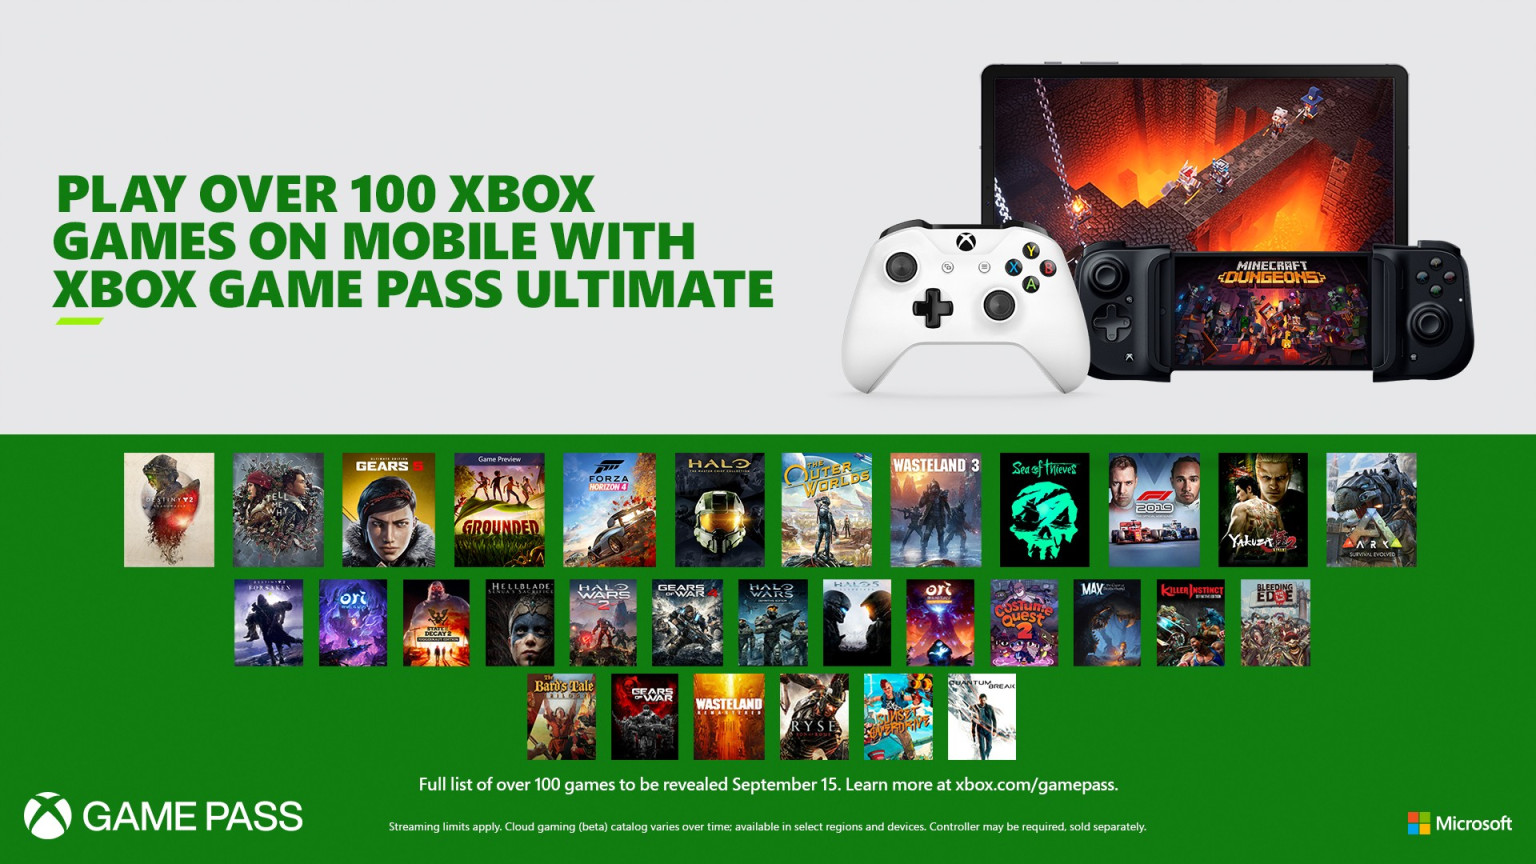 XCloud Xbox Game Pass Ultimate خدمة سحابية